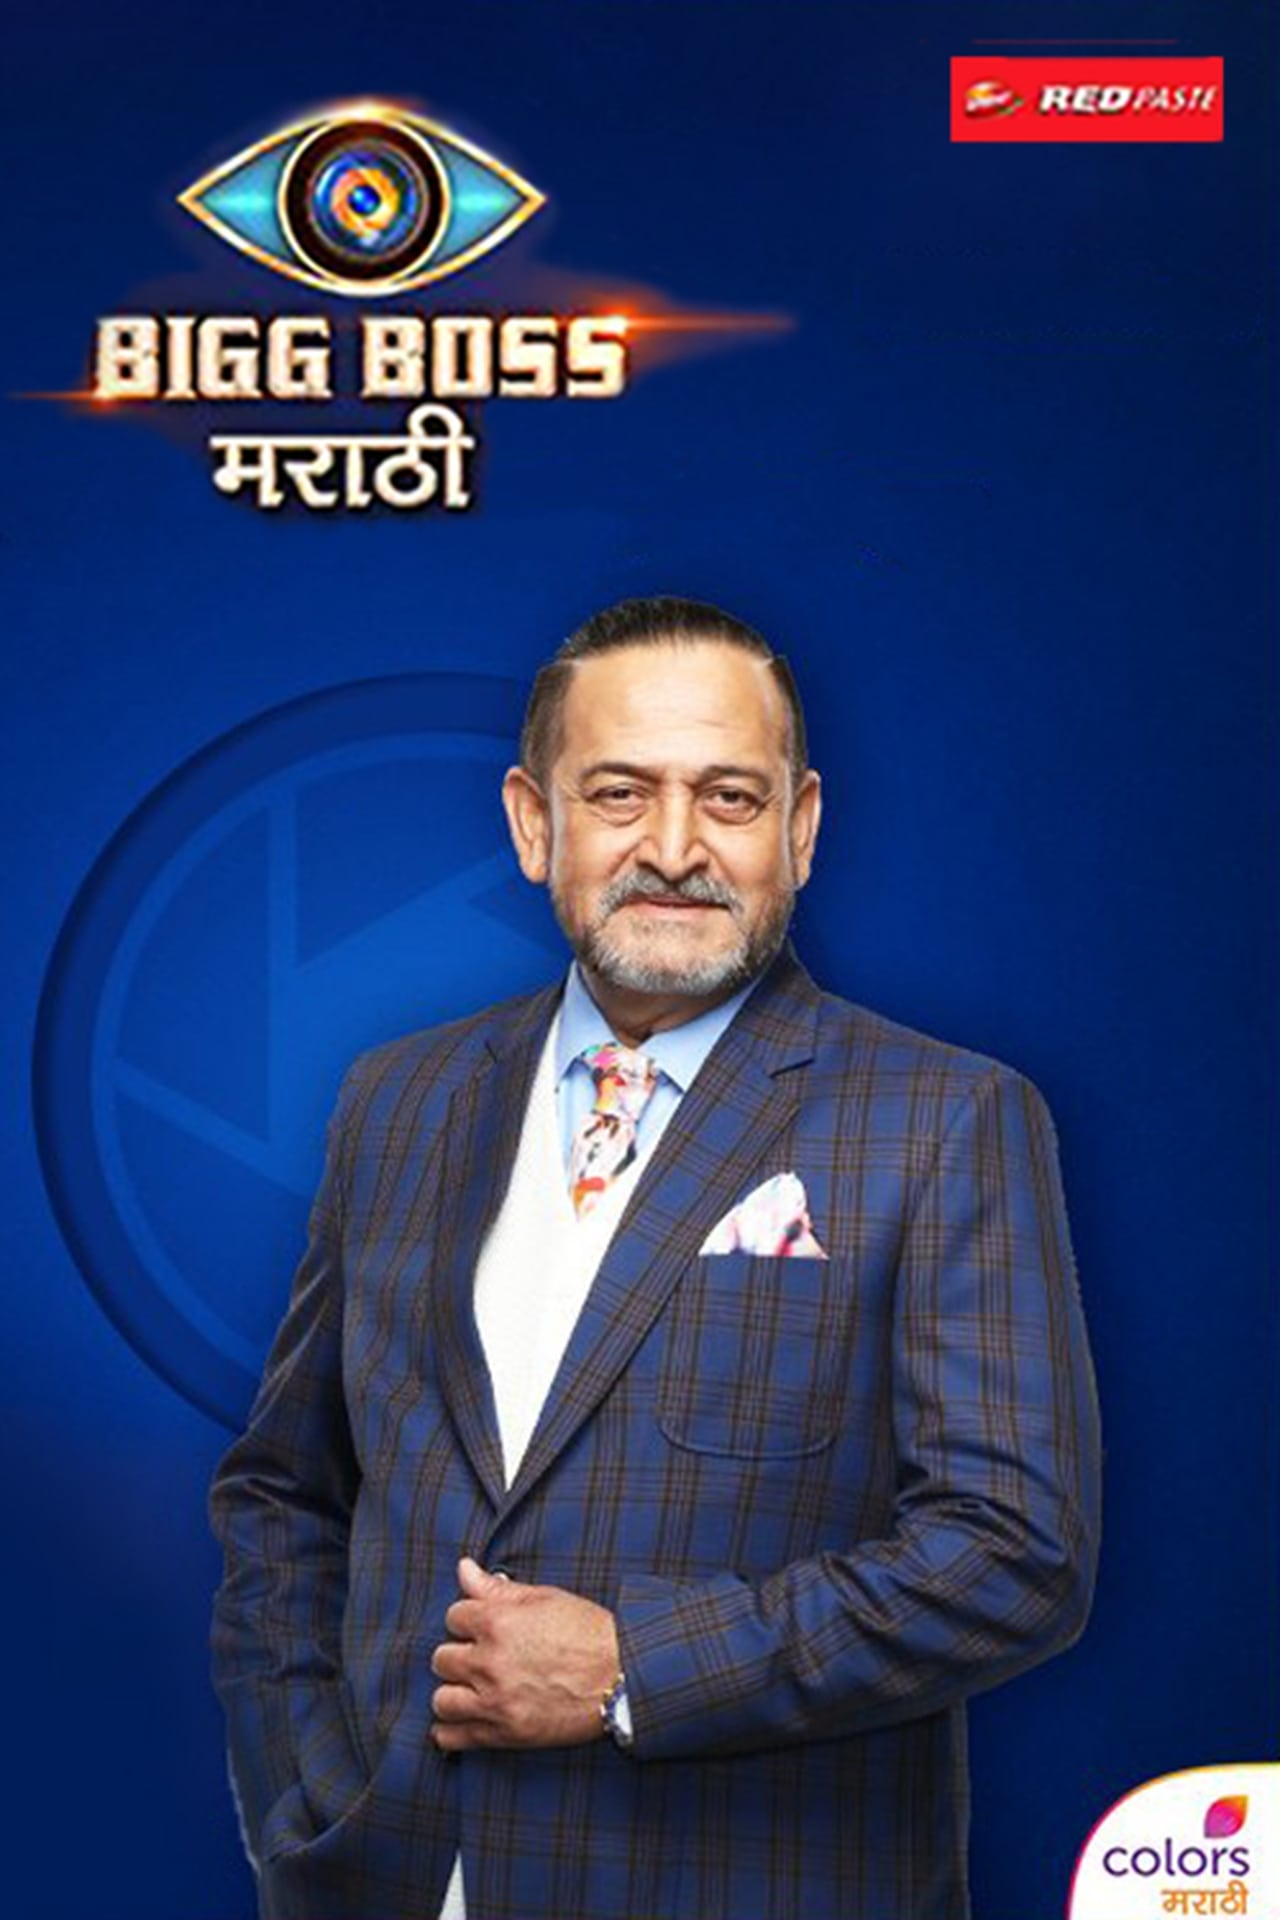 Watch Bigg Boss Season 1 Online